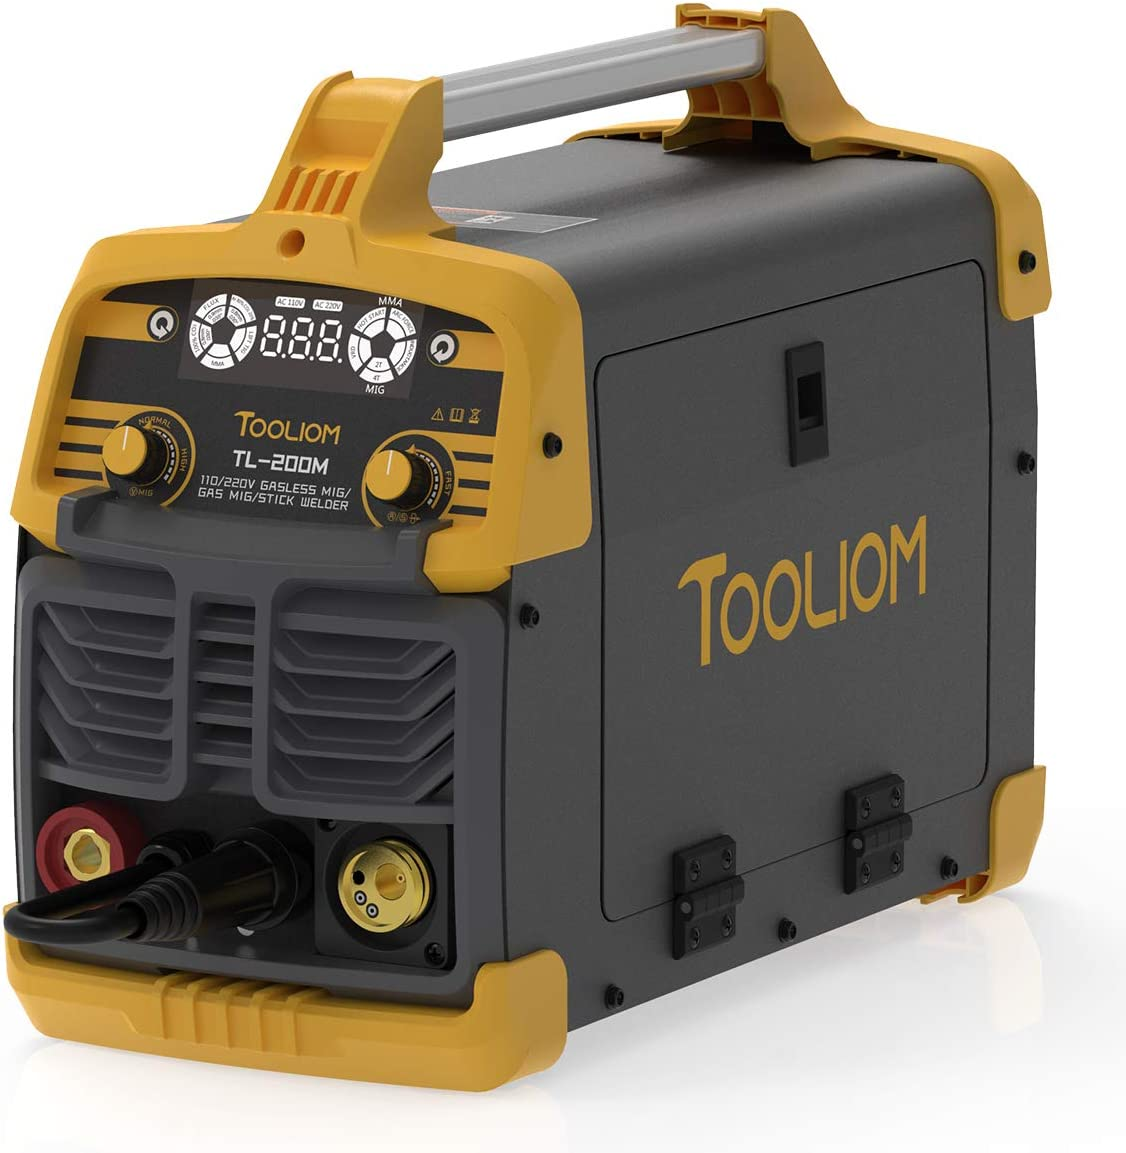 The best welding unit with synergic function: TOOLIOM 200A